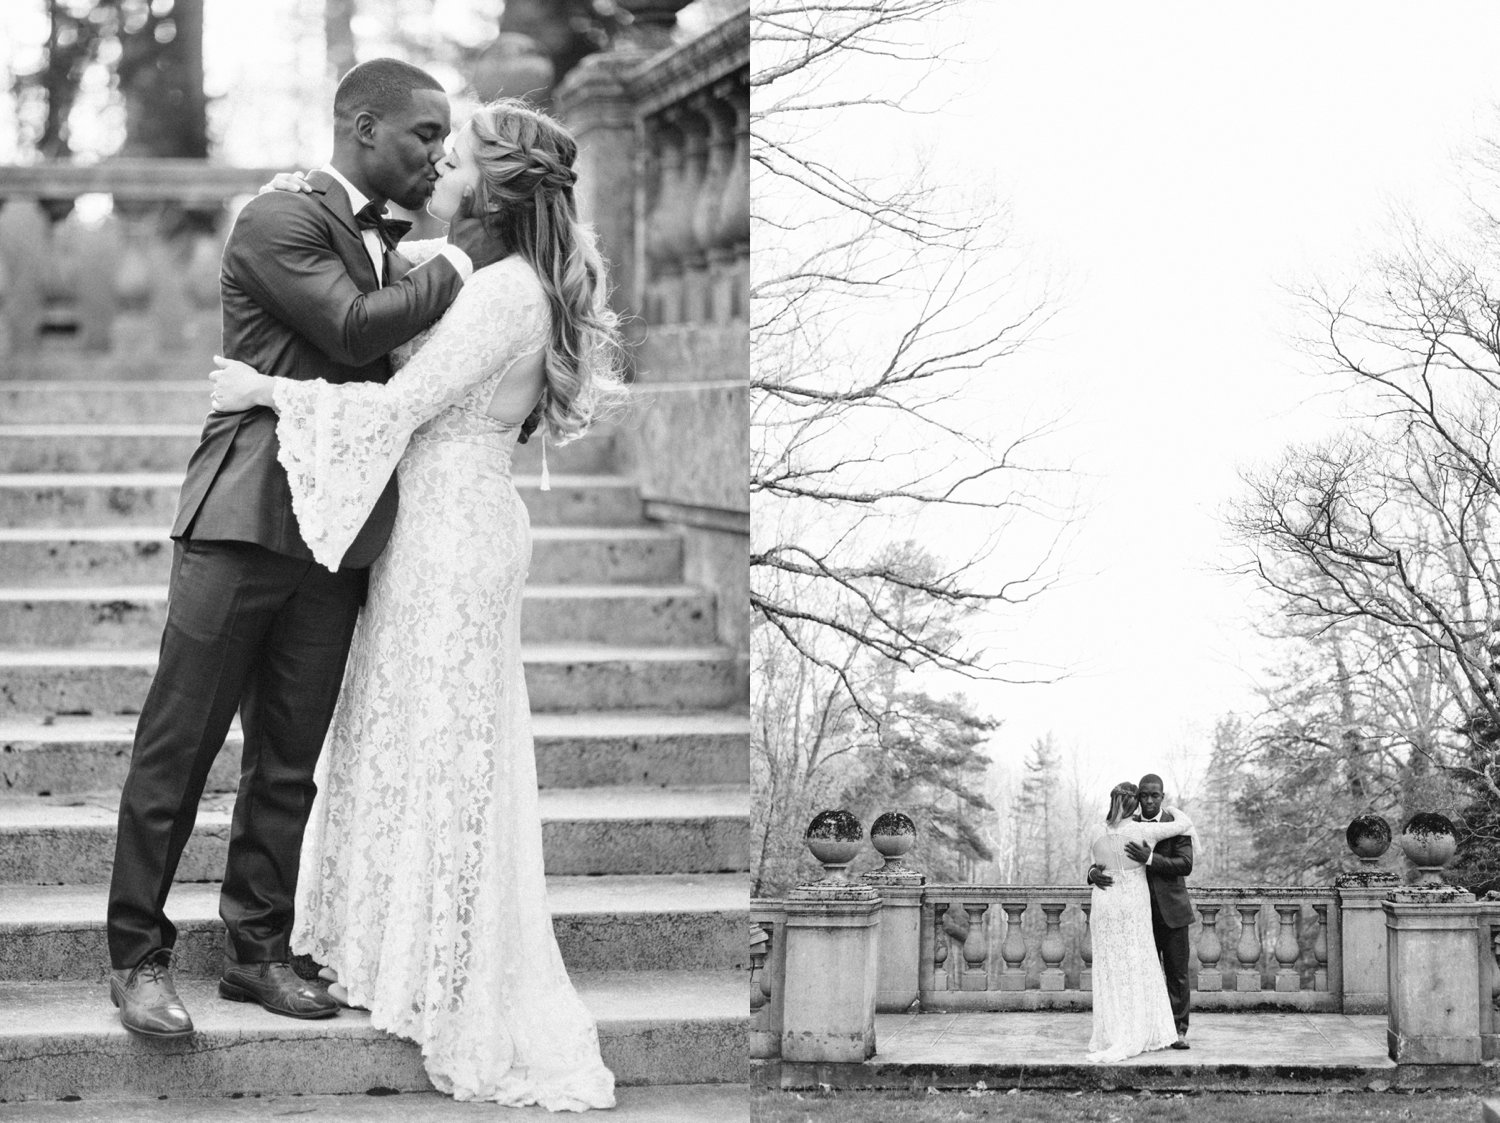 classic-romantic-wedding-maryland-photographer-strong-mansion-sentimental-ceremony-editorial-portraits-fine-art-bw